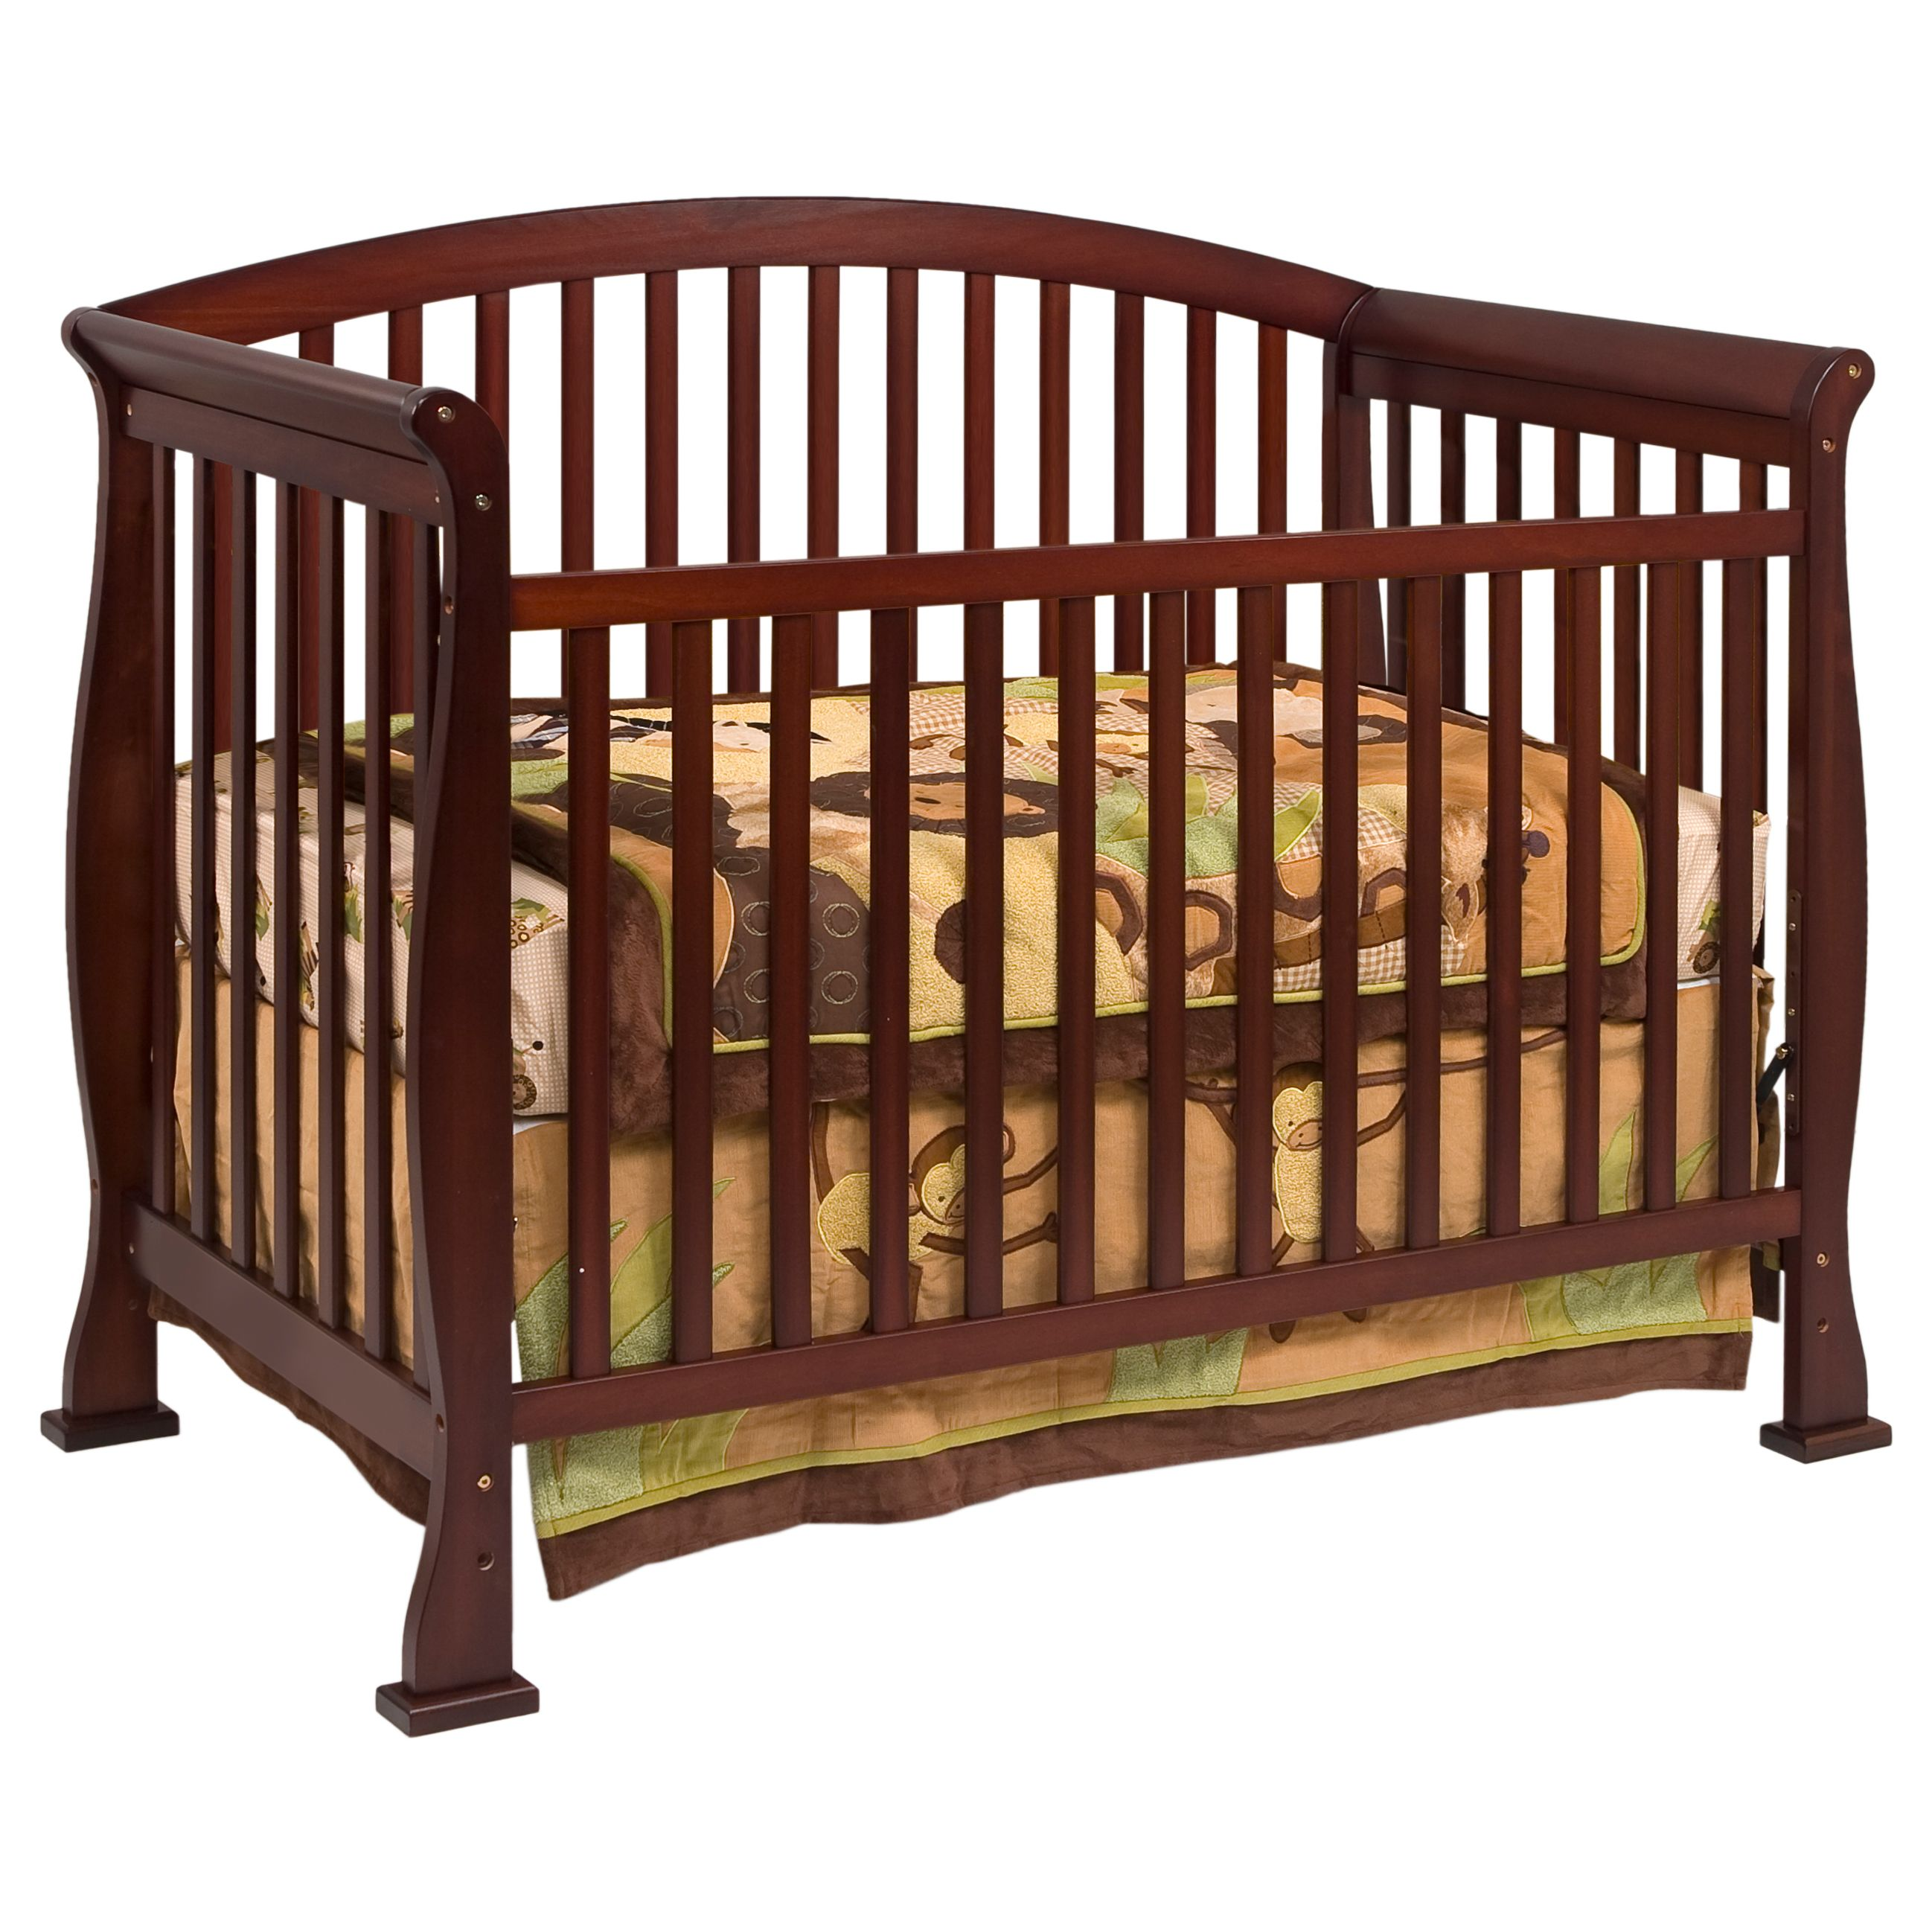 ga upholstered and high kids posh sorelle combo uk toddler bedroom designer brands new craft childrens coach luxury tot graco born augusta end convertible crib fantasy items beds baby recall nursery cribs child sets furniture for recalled london diddle with couture boutique tinkers welcoming changer mattresses in